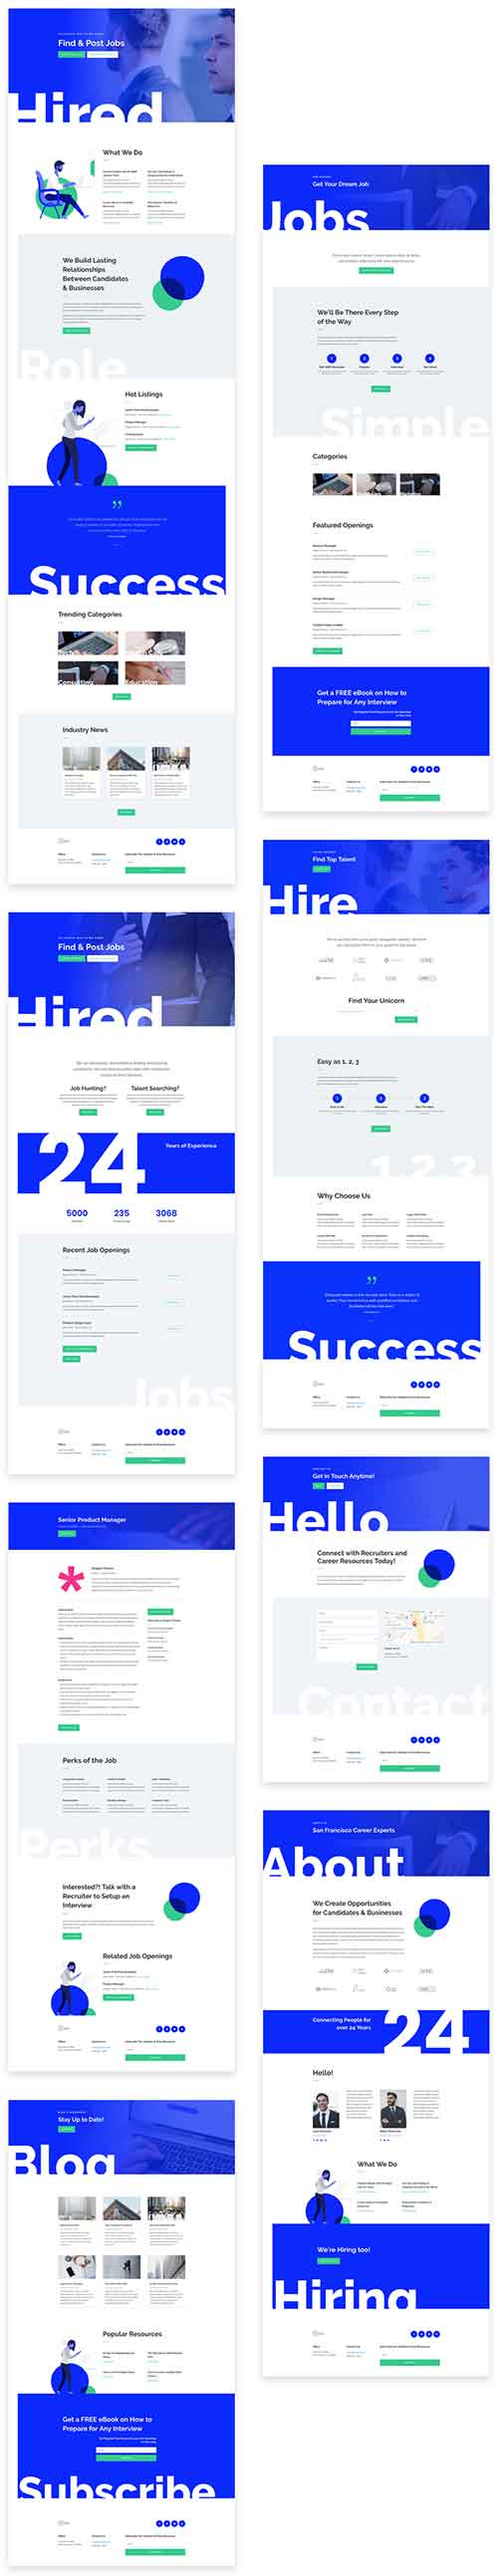 recruitment Divi Theme layout template